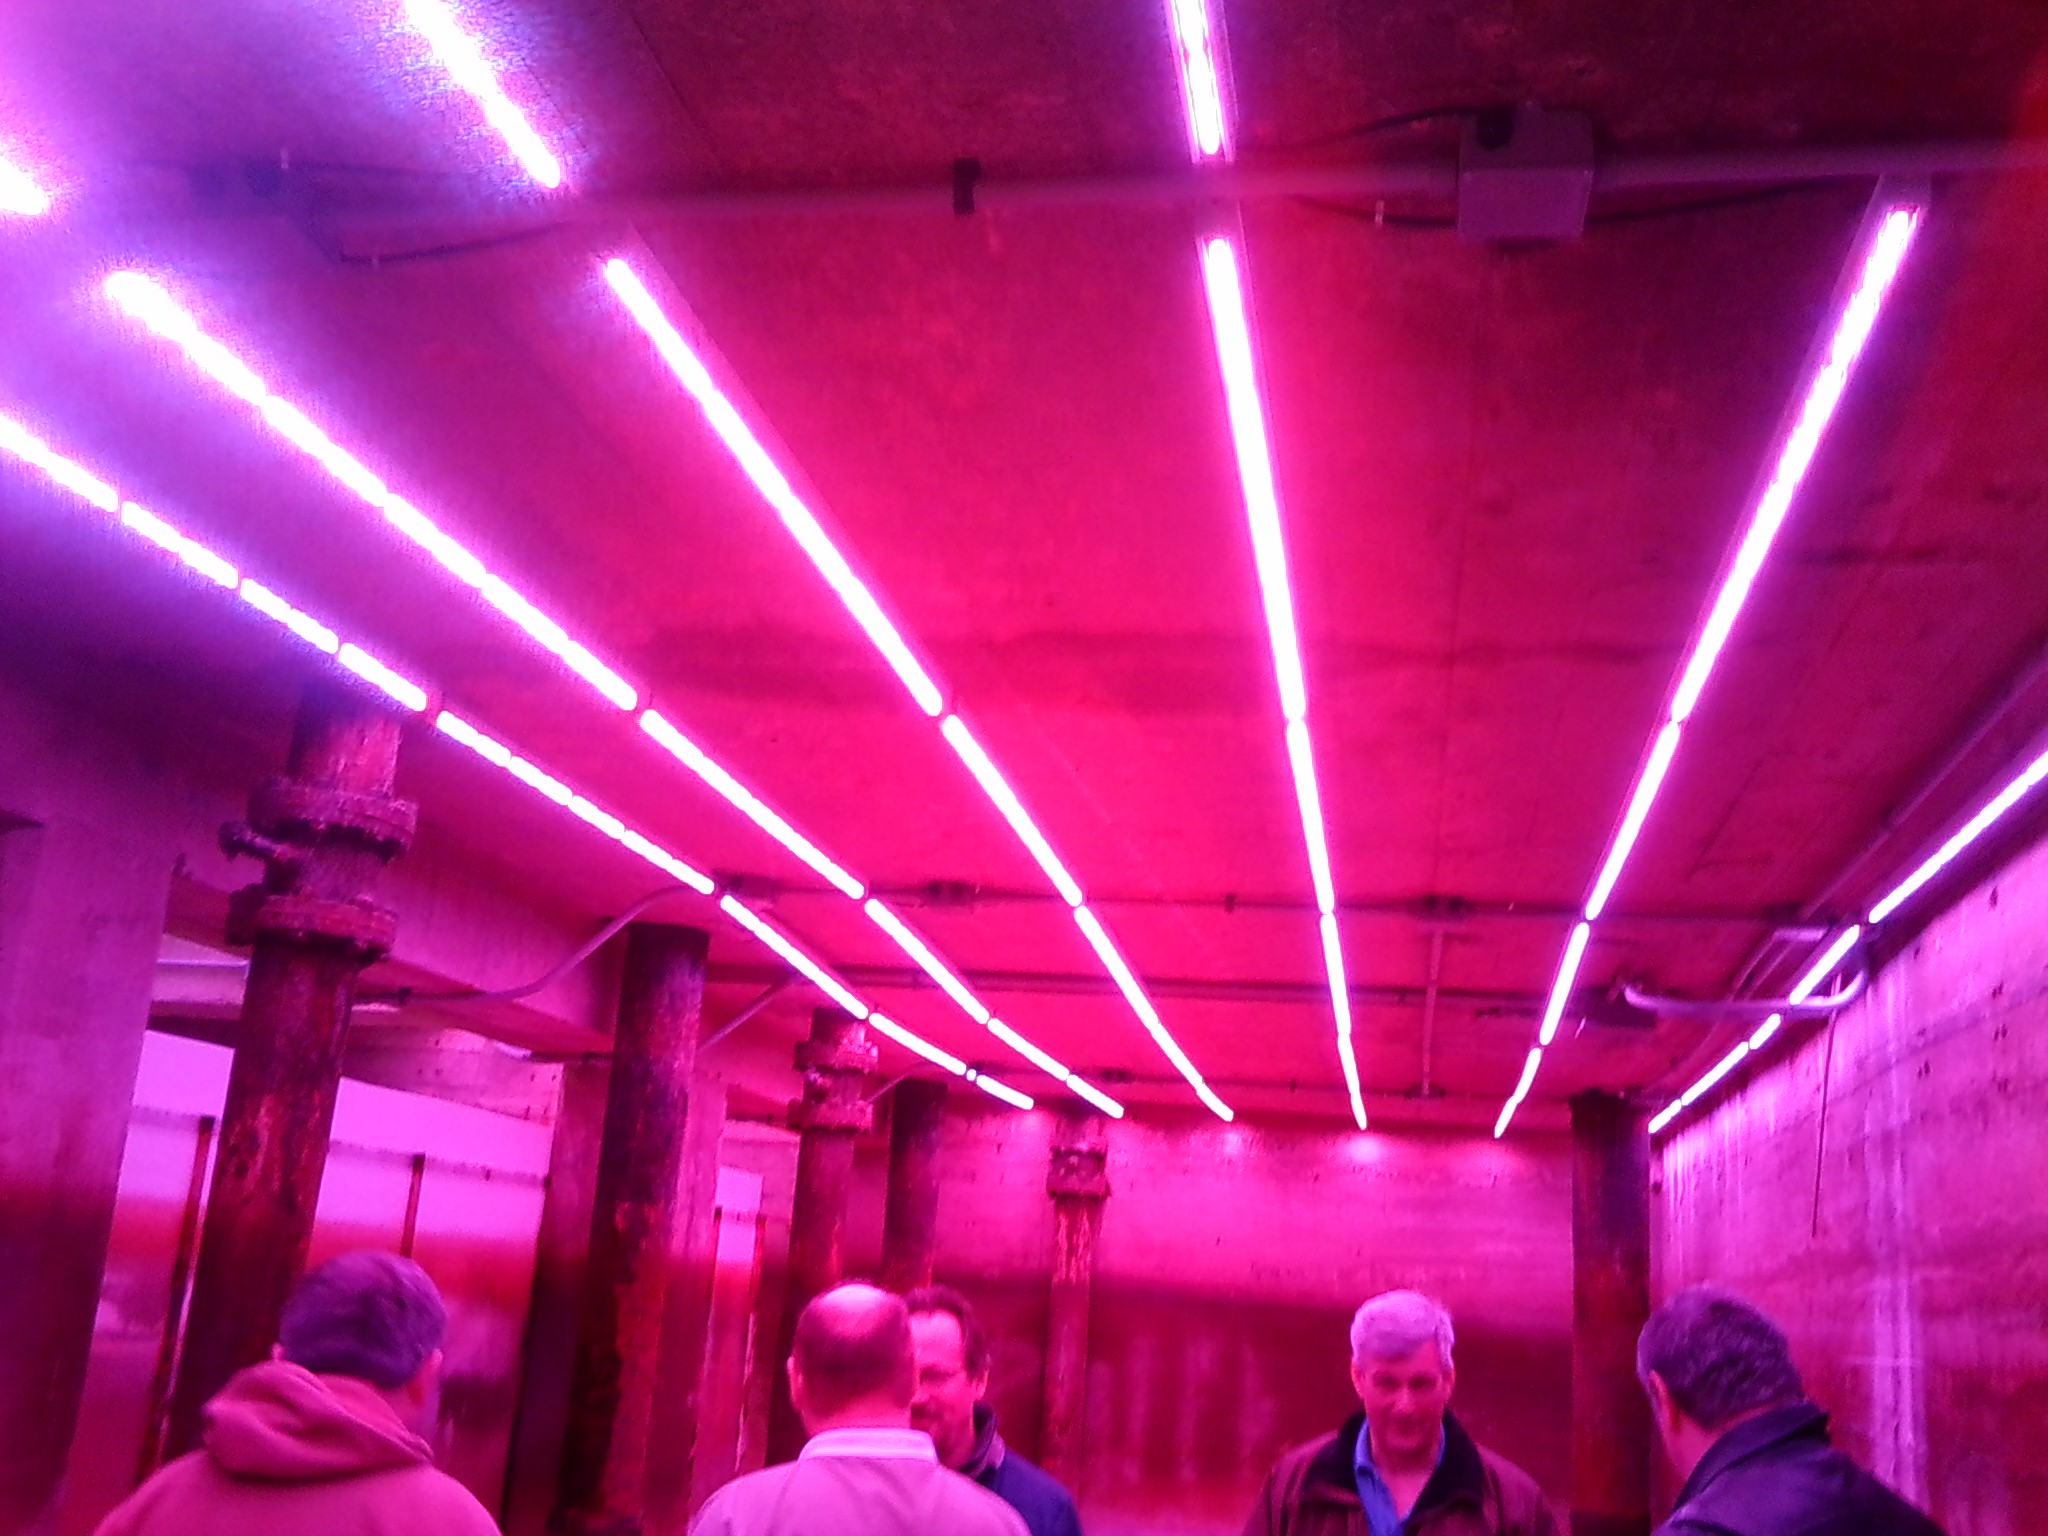 Construction of Red and blue lights in growth chamber.